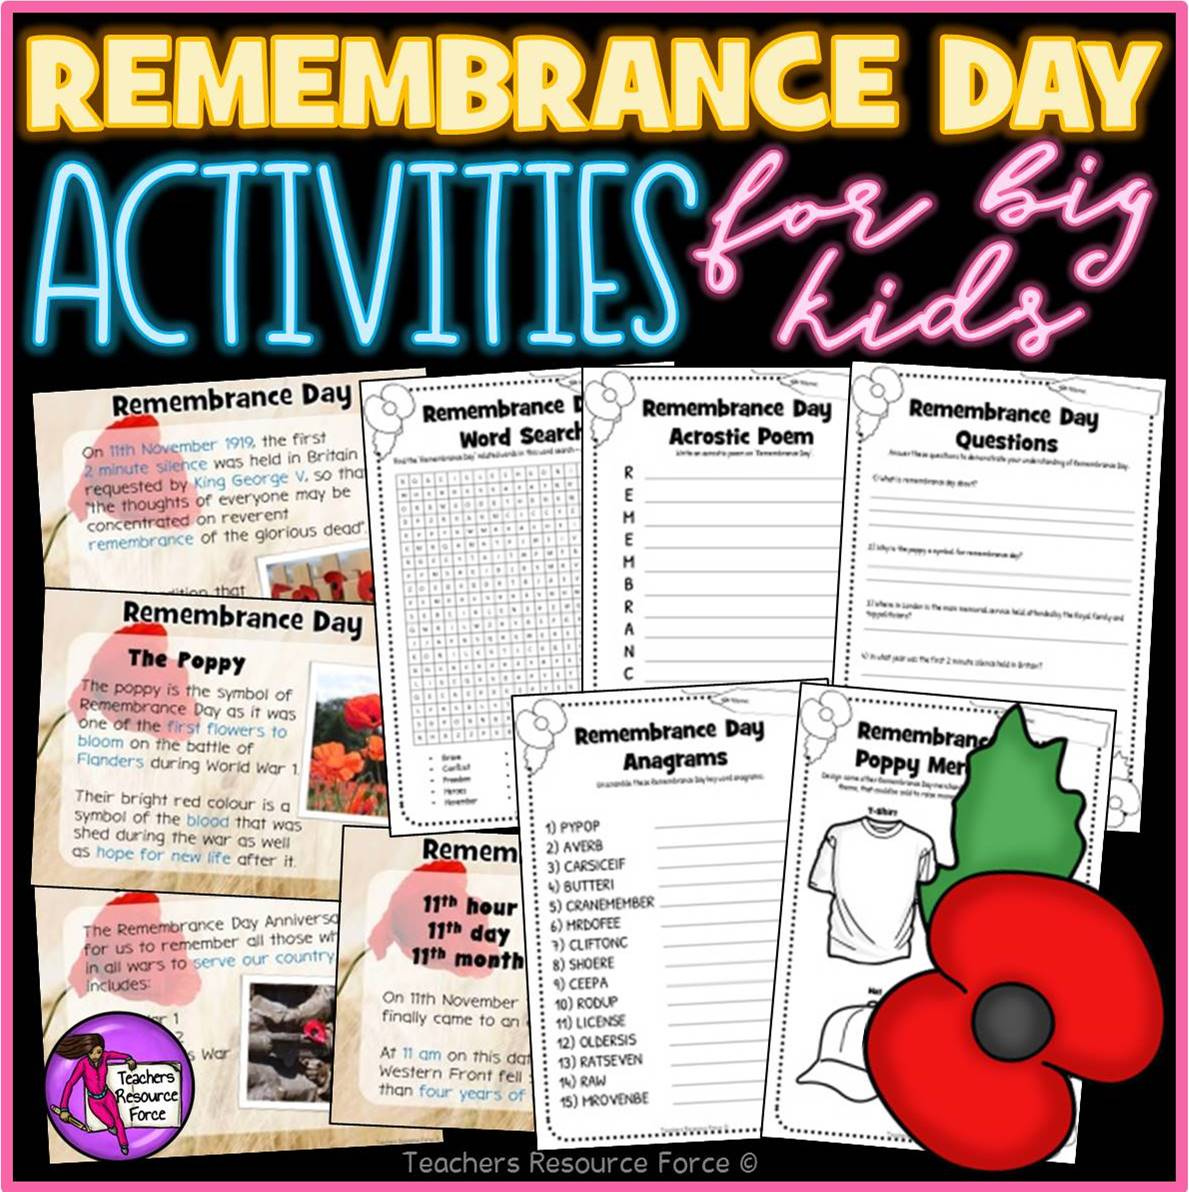 Remembrance Day Presentation And Activities For Teens